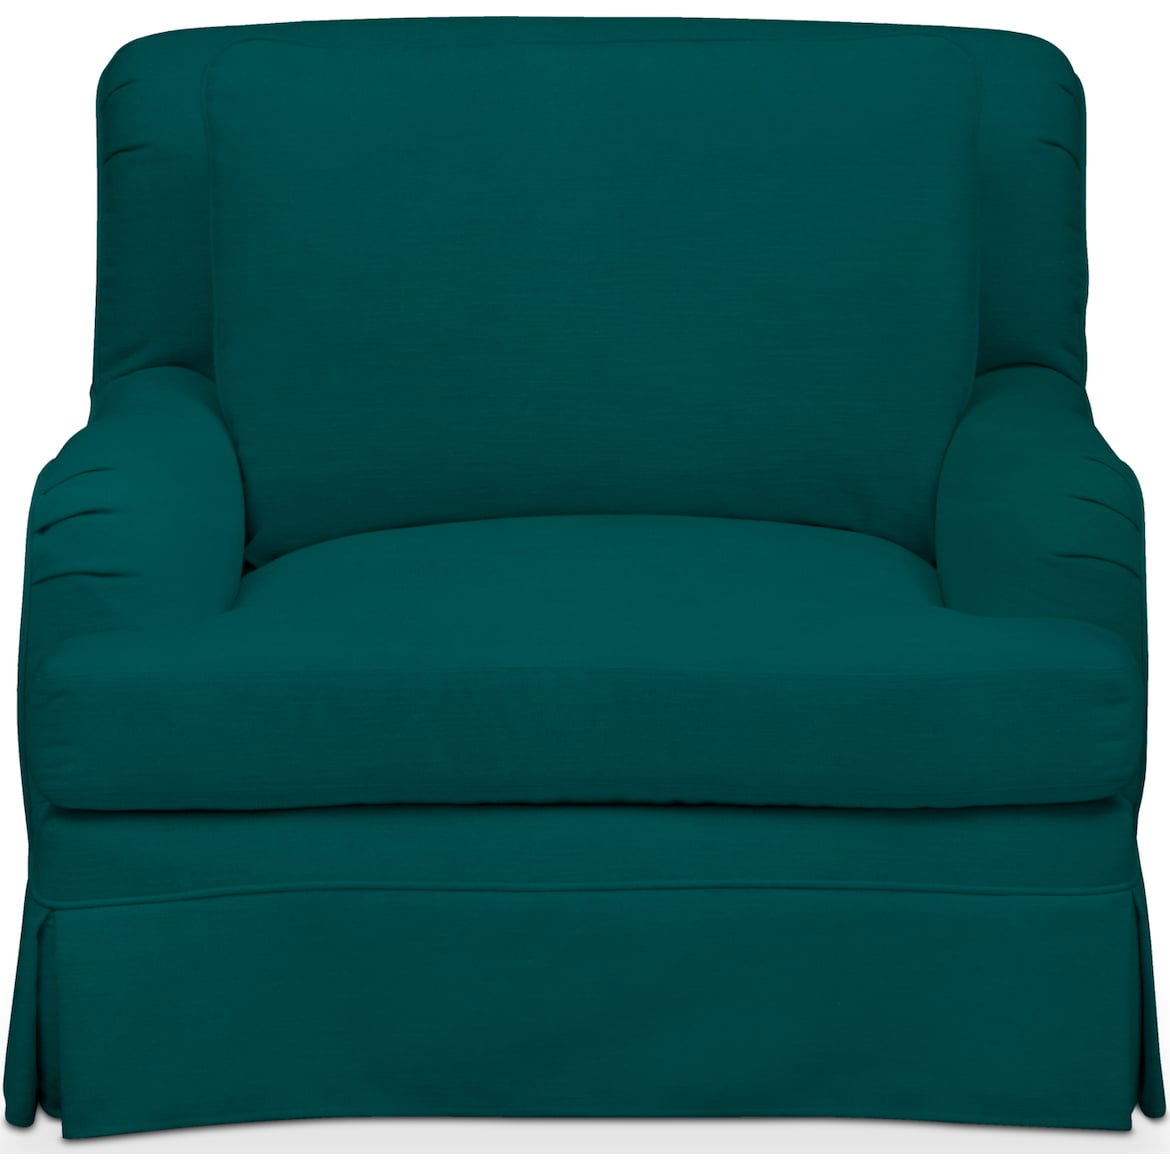 Campbell Chair American Signature Furniture